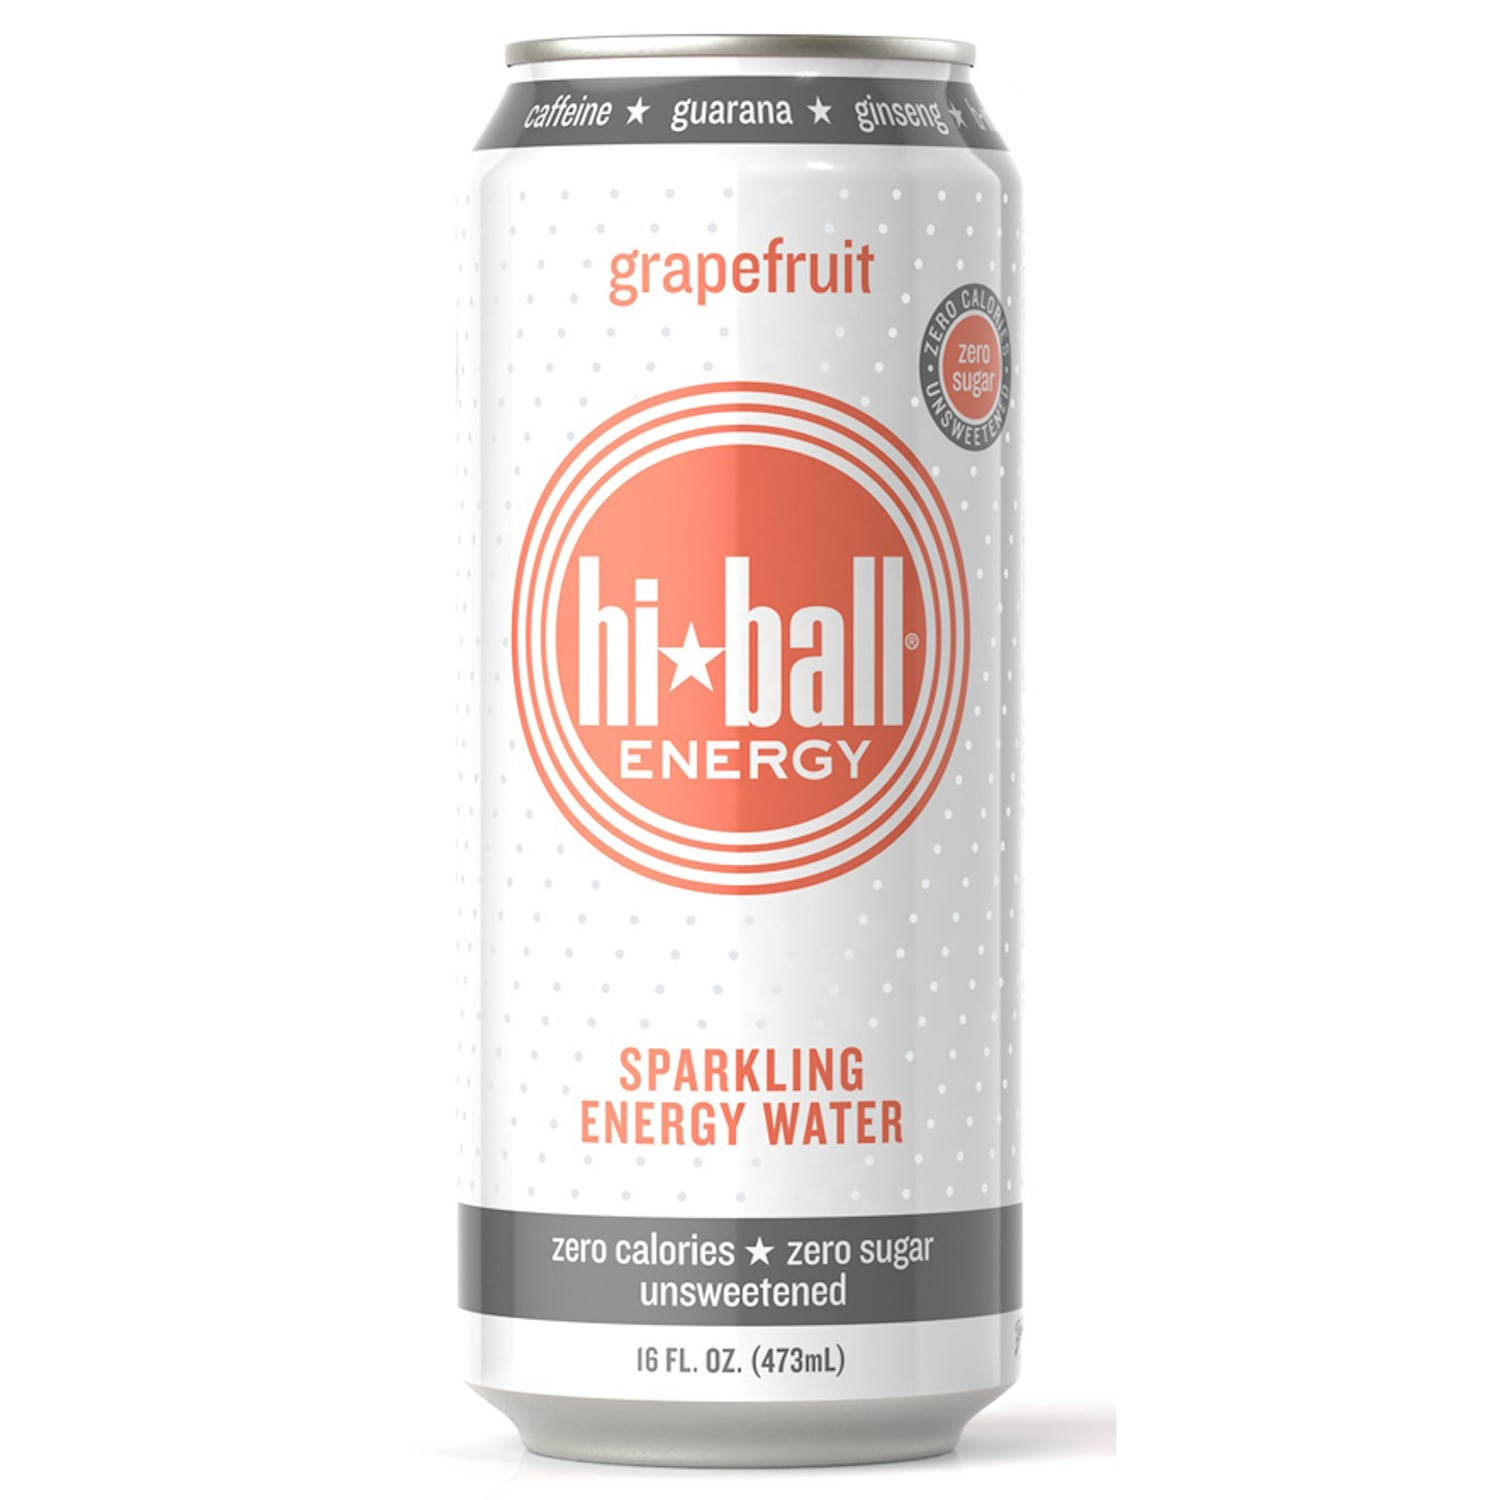 Hiball Energy Sparkling Energy Water, Grapefruit, 16 Fl Oz, 12 Count